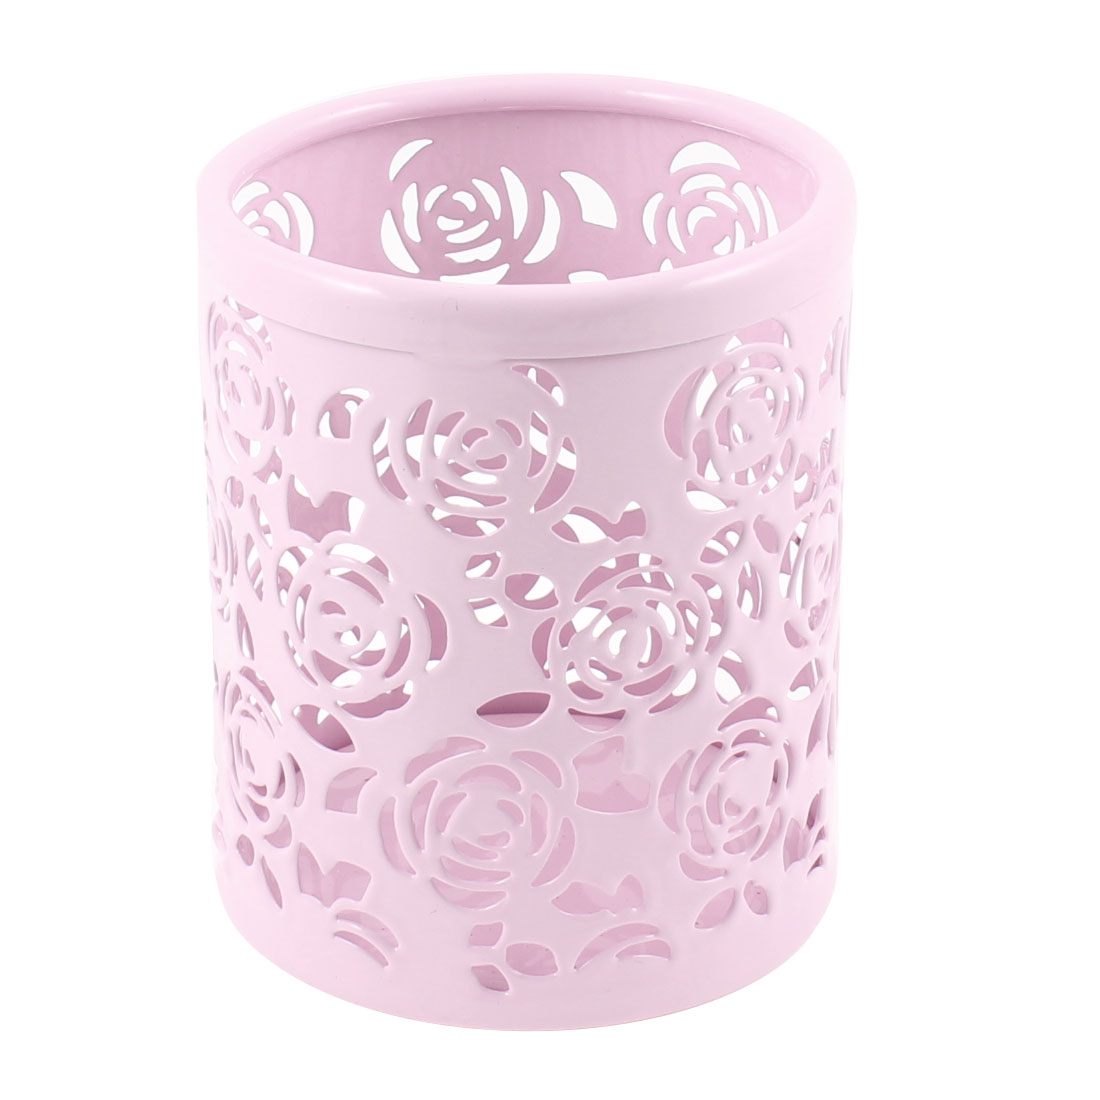 Metal Flower Pattern Hollow Rose Pen Pencil Pot Holder Organizer Light Pink